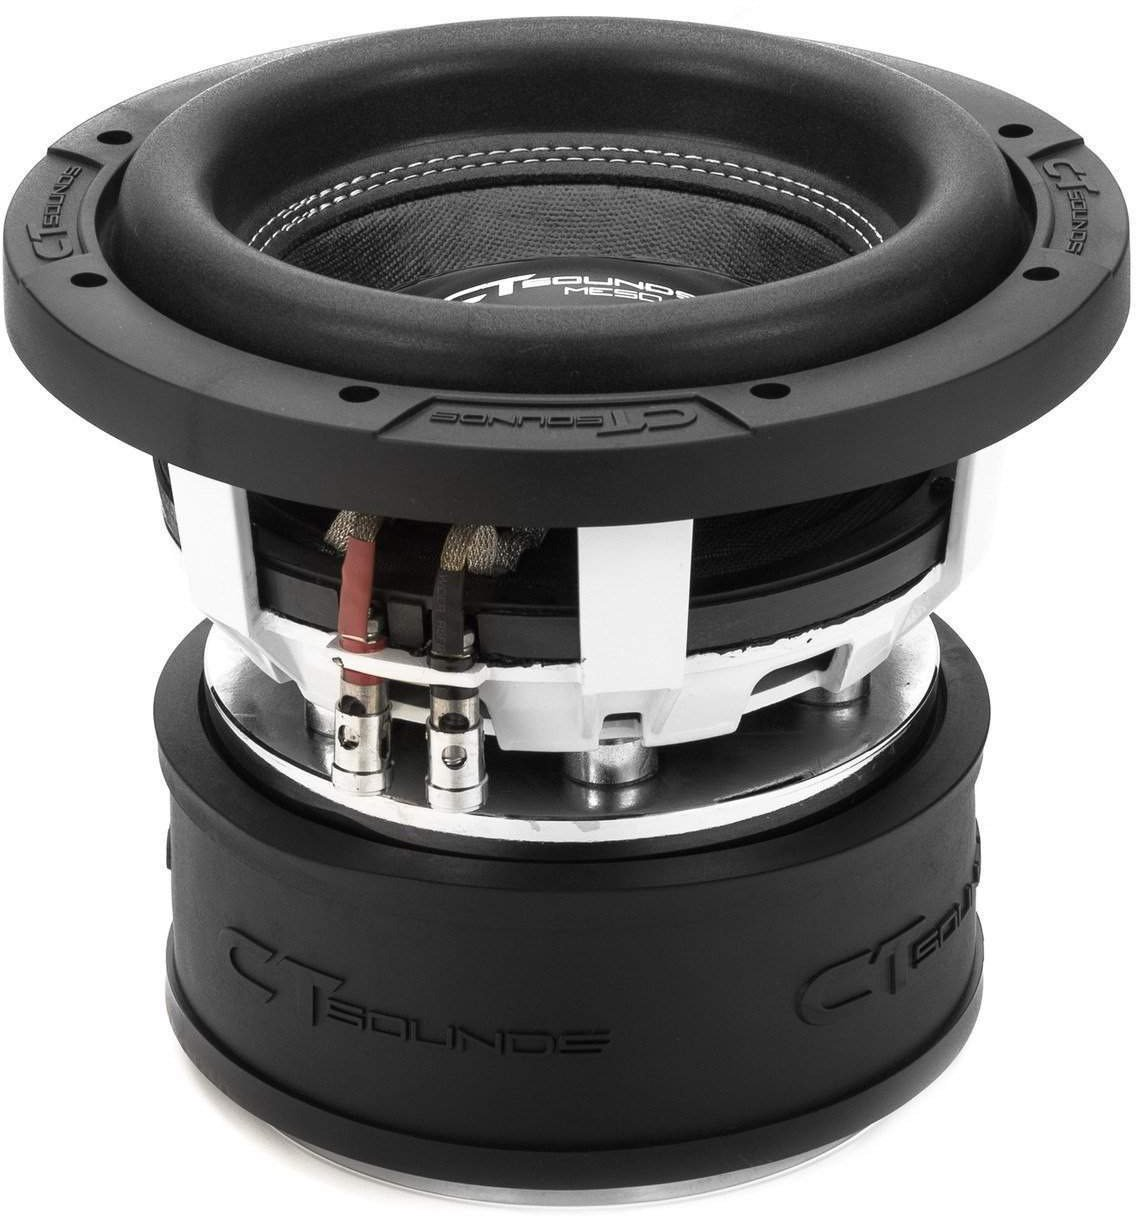 CT Sounds Meso 8-inch SPL Subwoofers